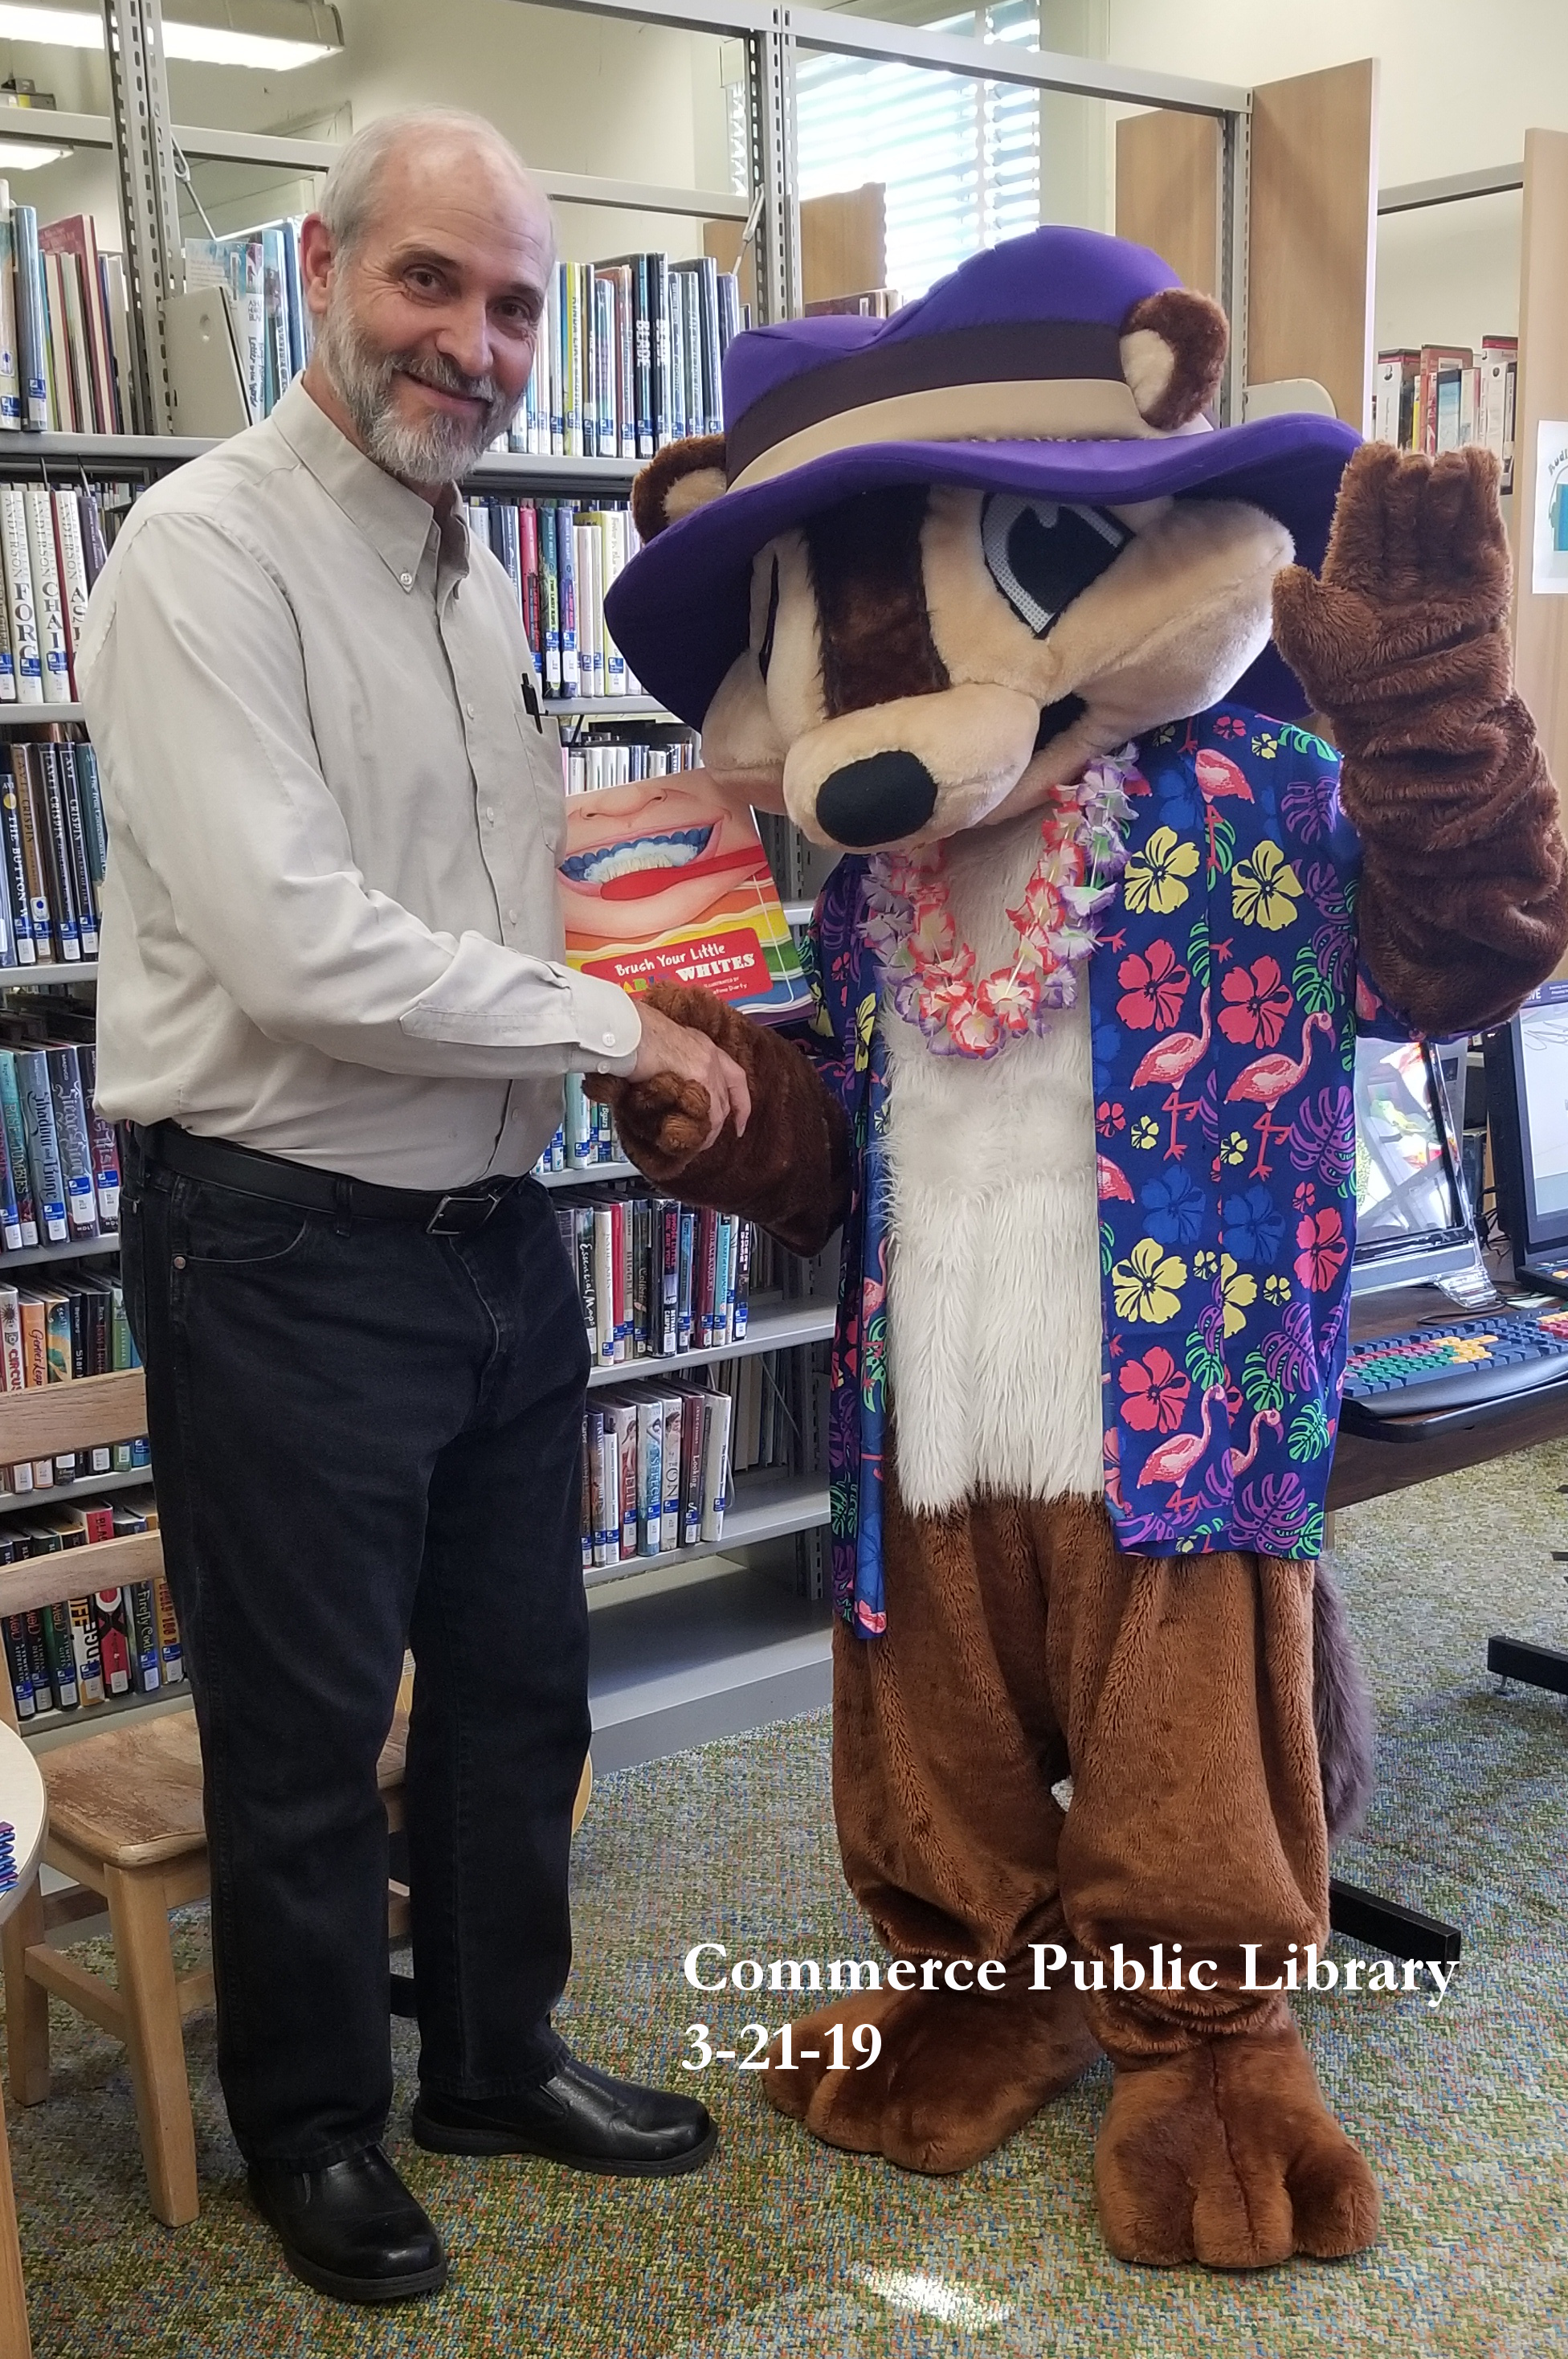 With mascot at Library.jpg